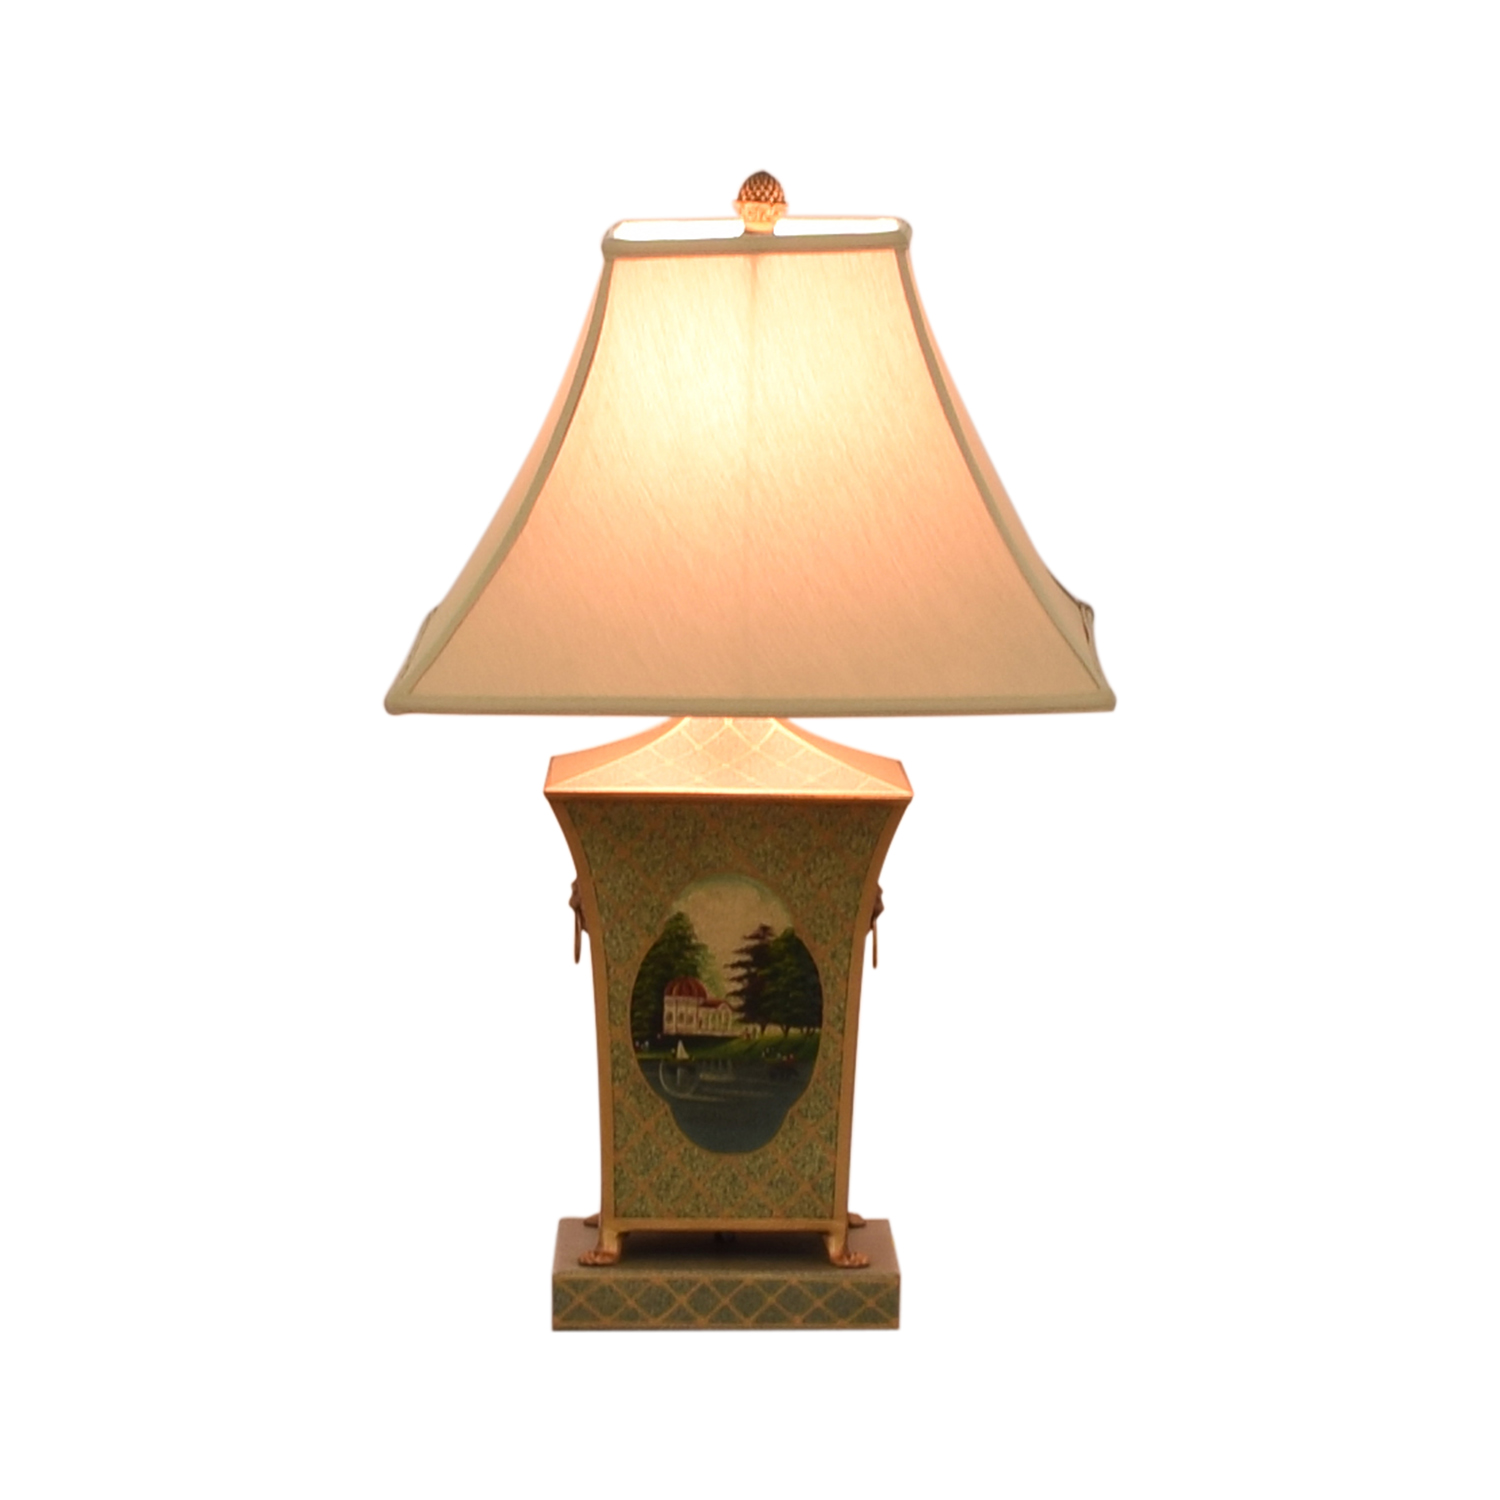 Decorative Crafts Decorative Crafts Table Lamp for sale